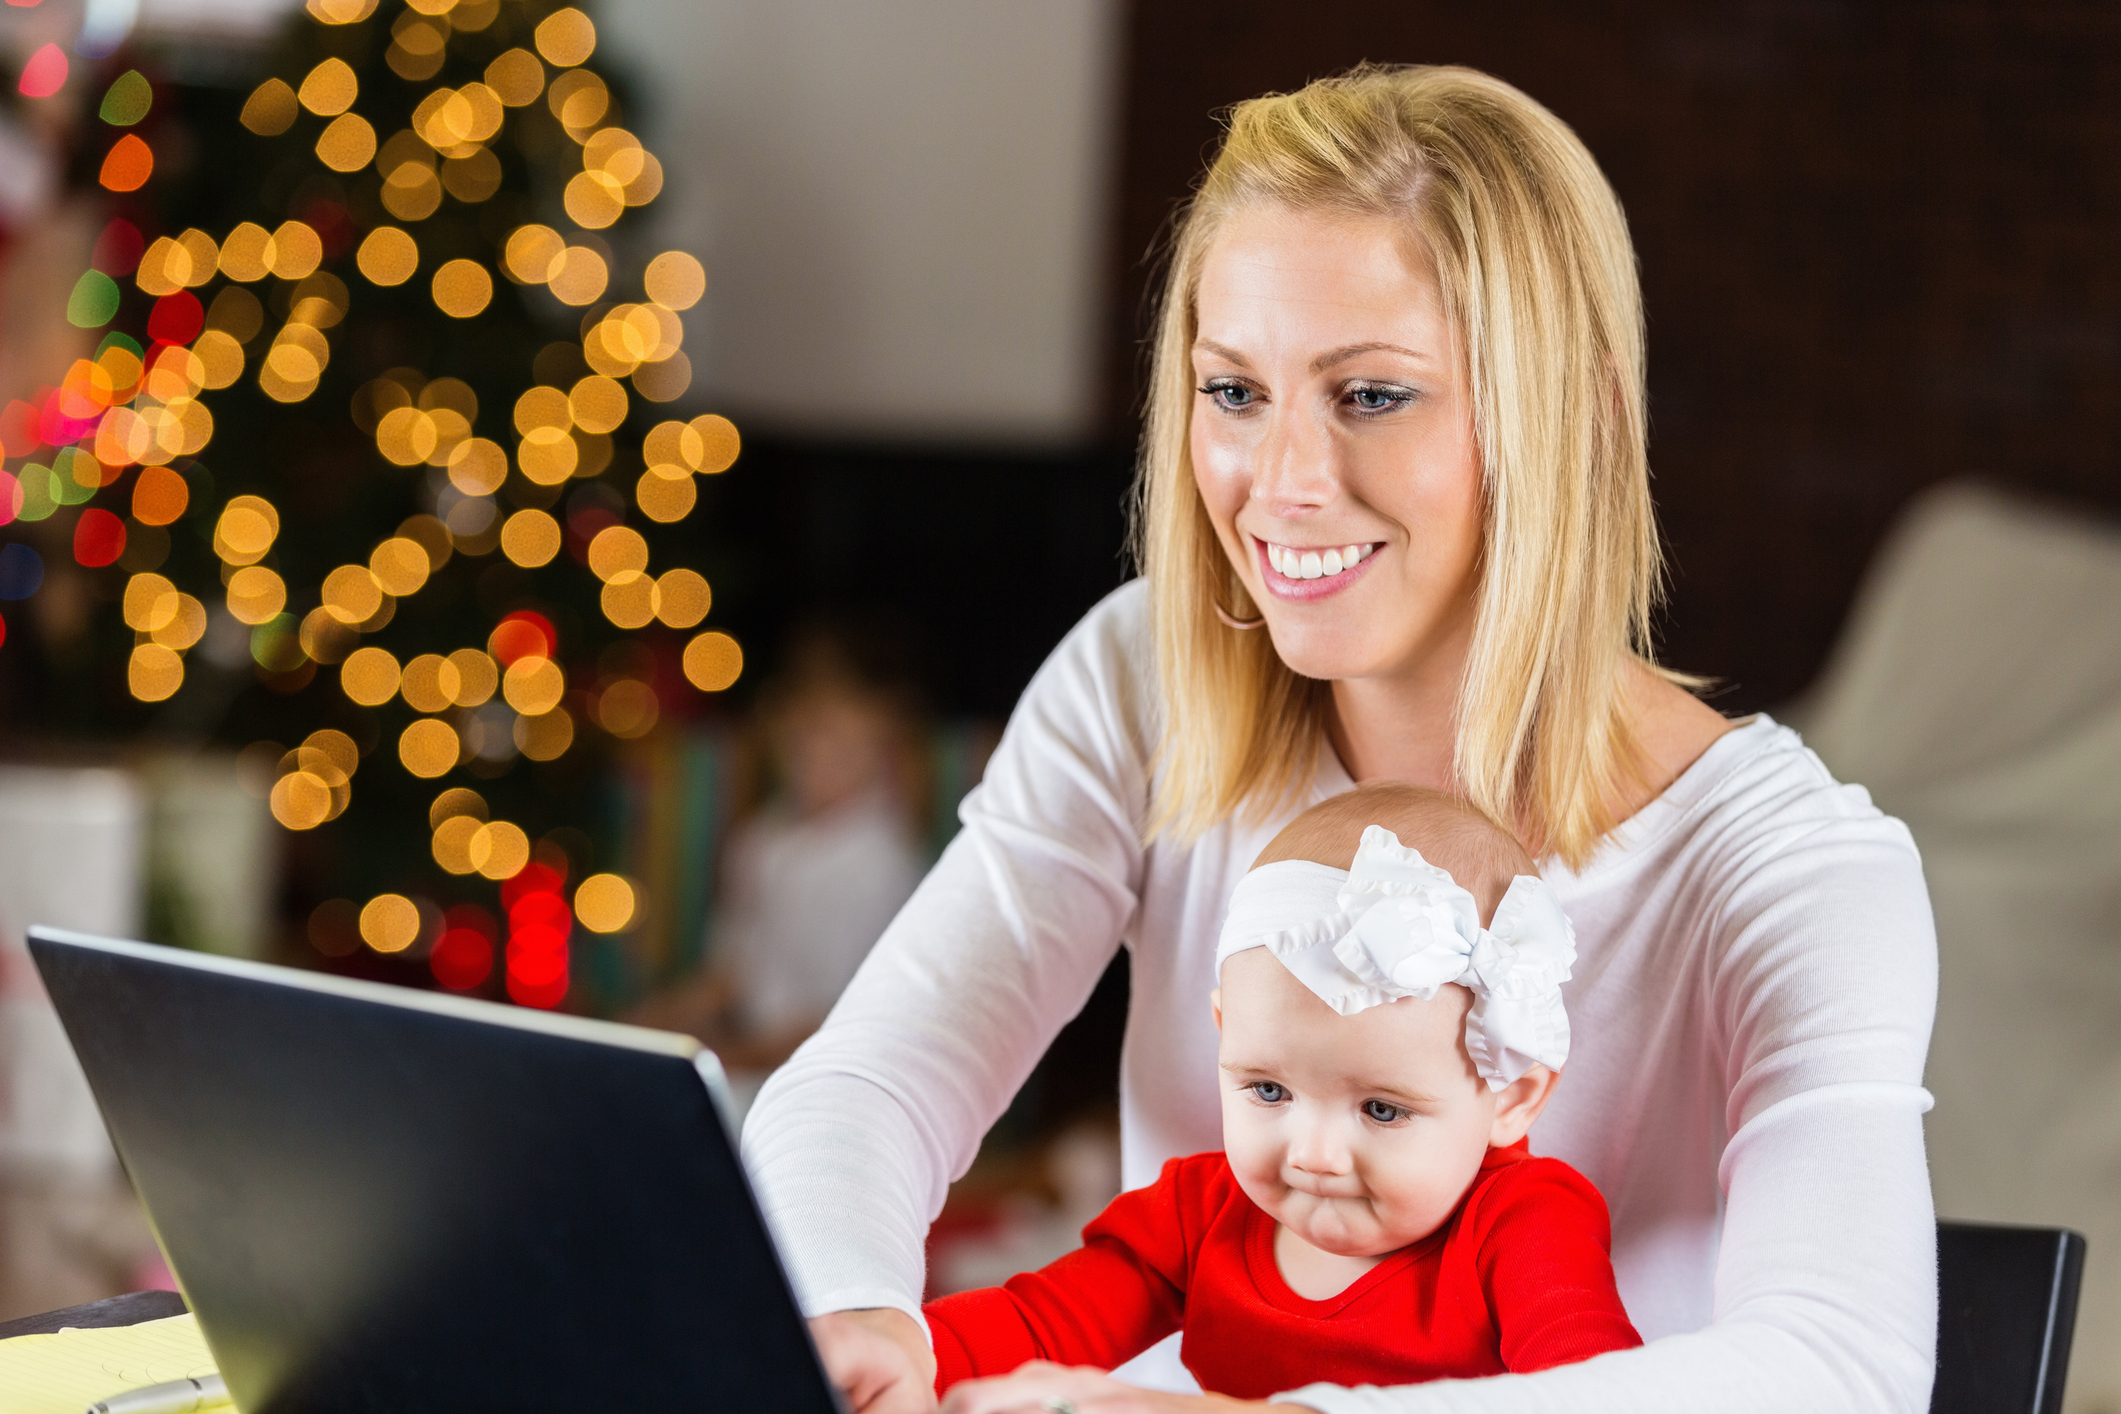 new telecommute job openings cozy up to 14 leads